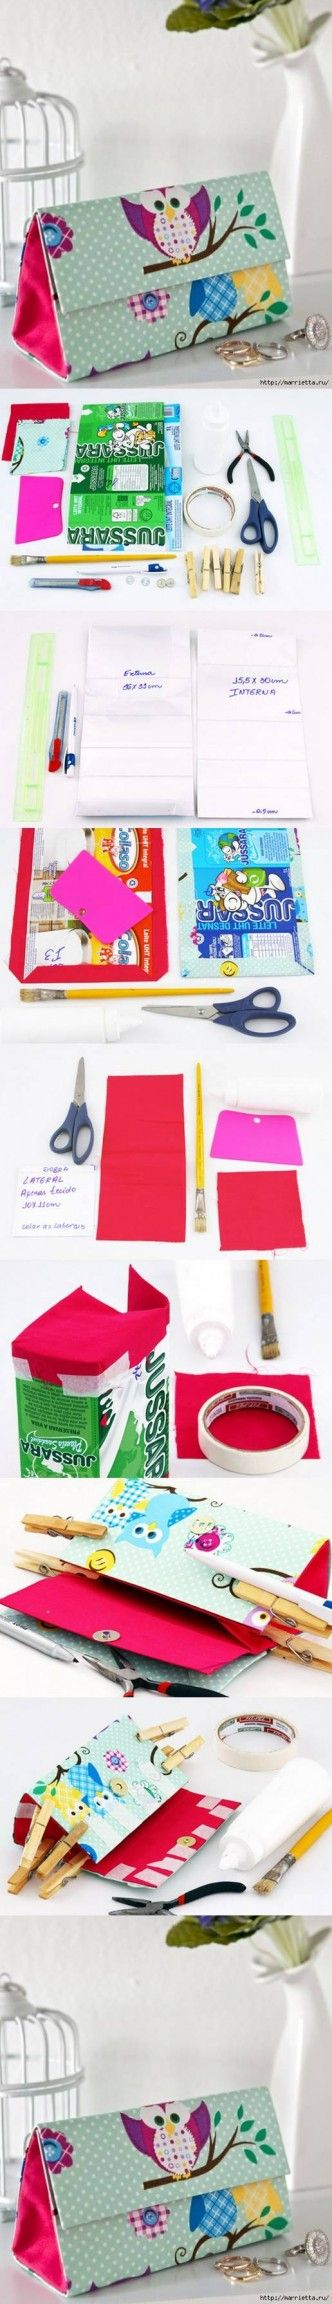 DIY Milk Box Clutch Handbag DIY Projects